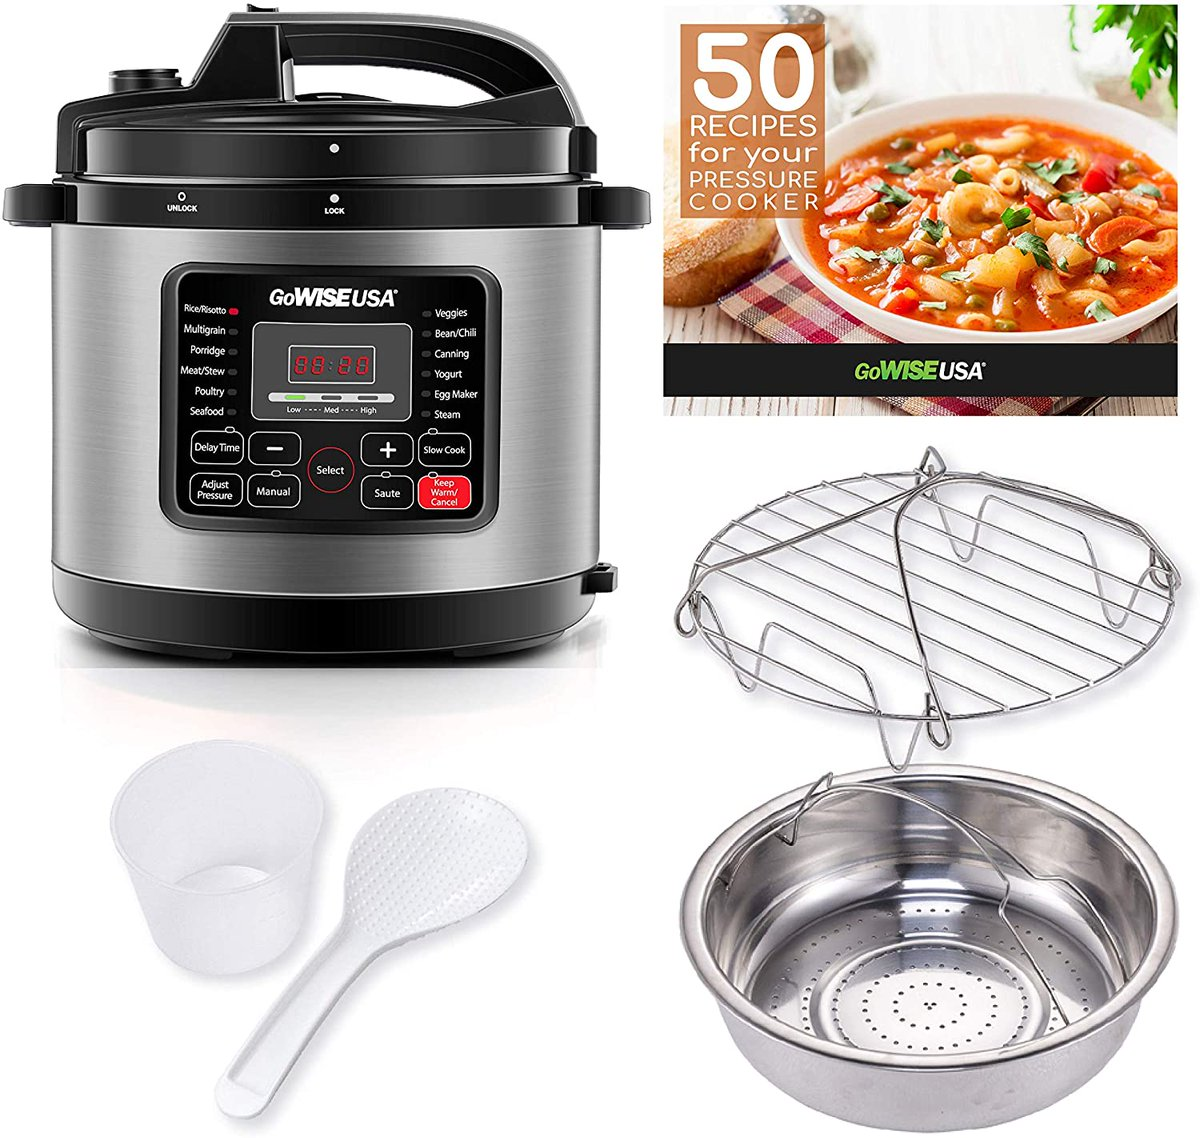 8-Quarts 12-in-1 Electric Pressure Cooker with Measuring Cup, Stainless Steel Rack & Basket  Price - $73.71  https://t.co/dHU82ARXKU  #cooking #giftideas #Sales #amazon #deals #NaughtiasDeals #bargains #electronics https://t.co/O9EXsVohBa